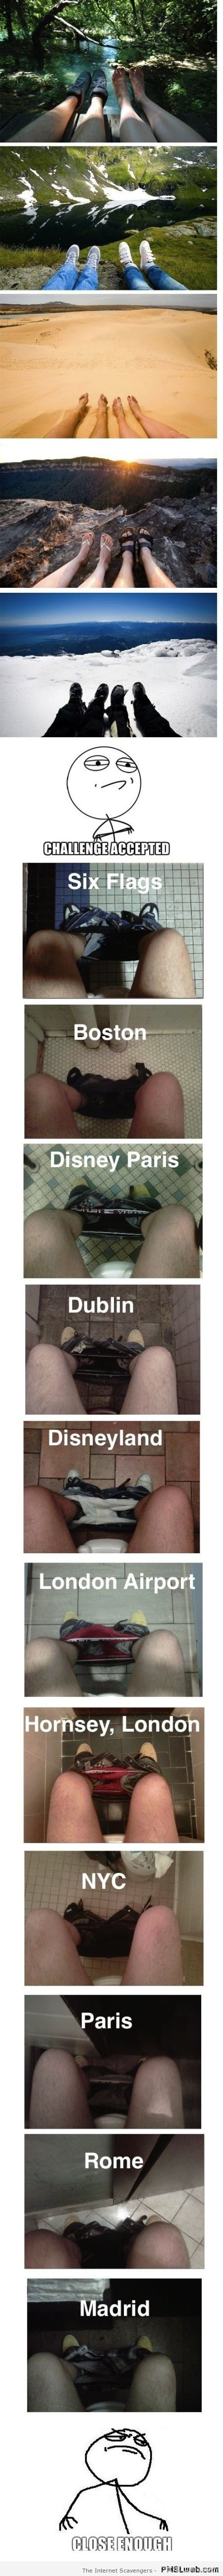 Photos of legs in toilets worldwide meme at PMSLweb.com